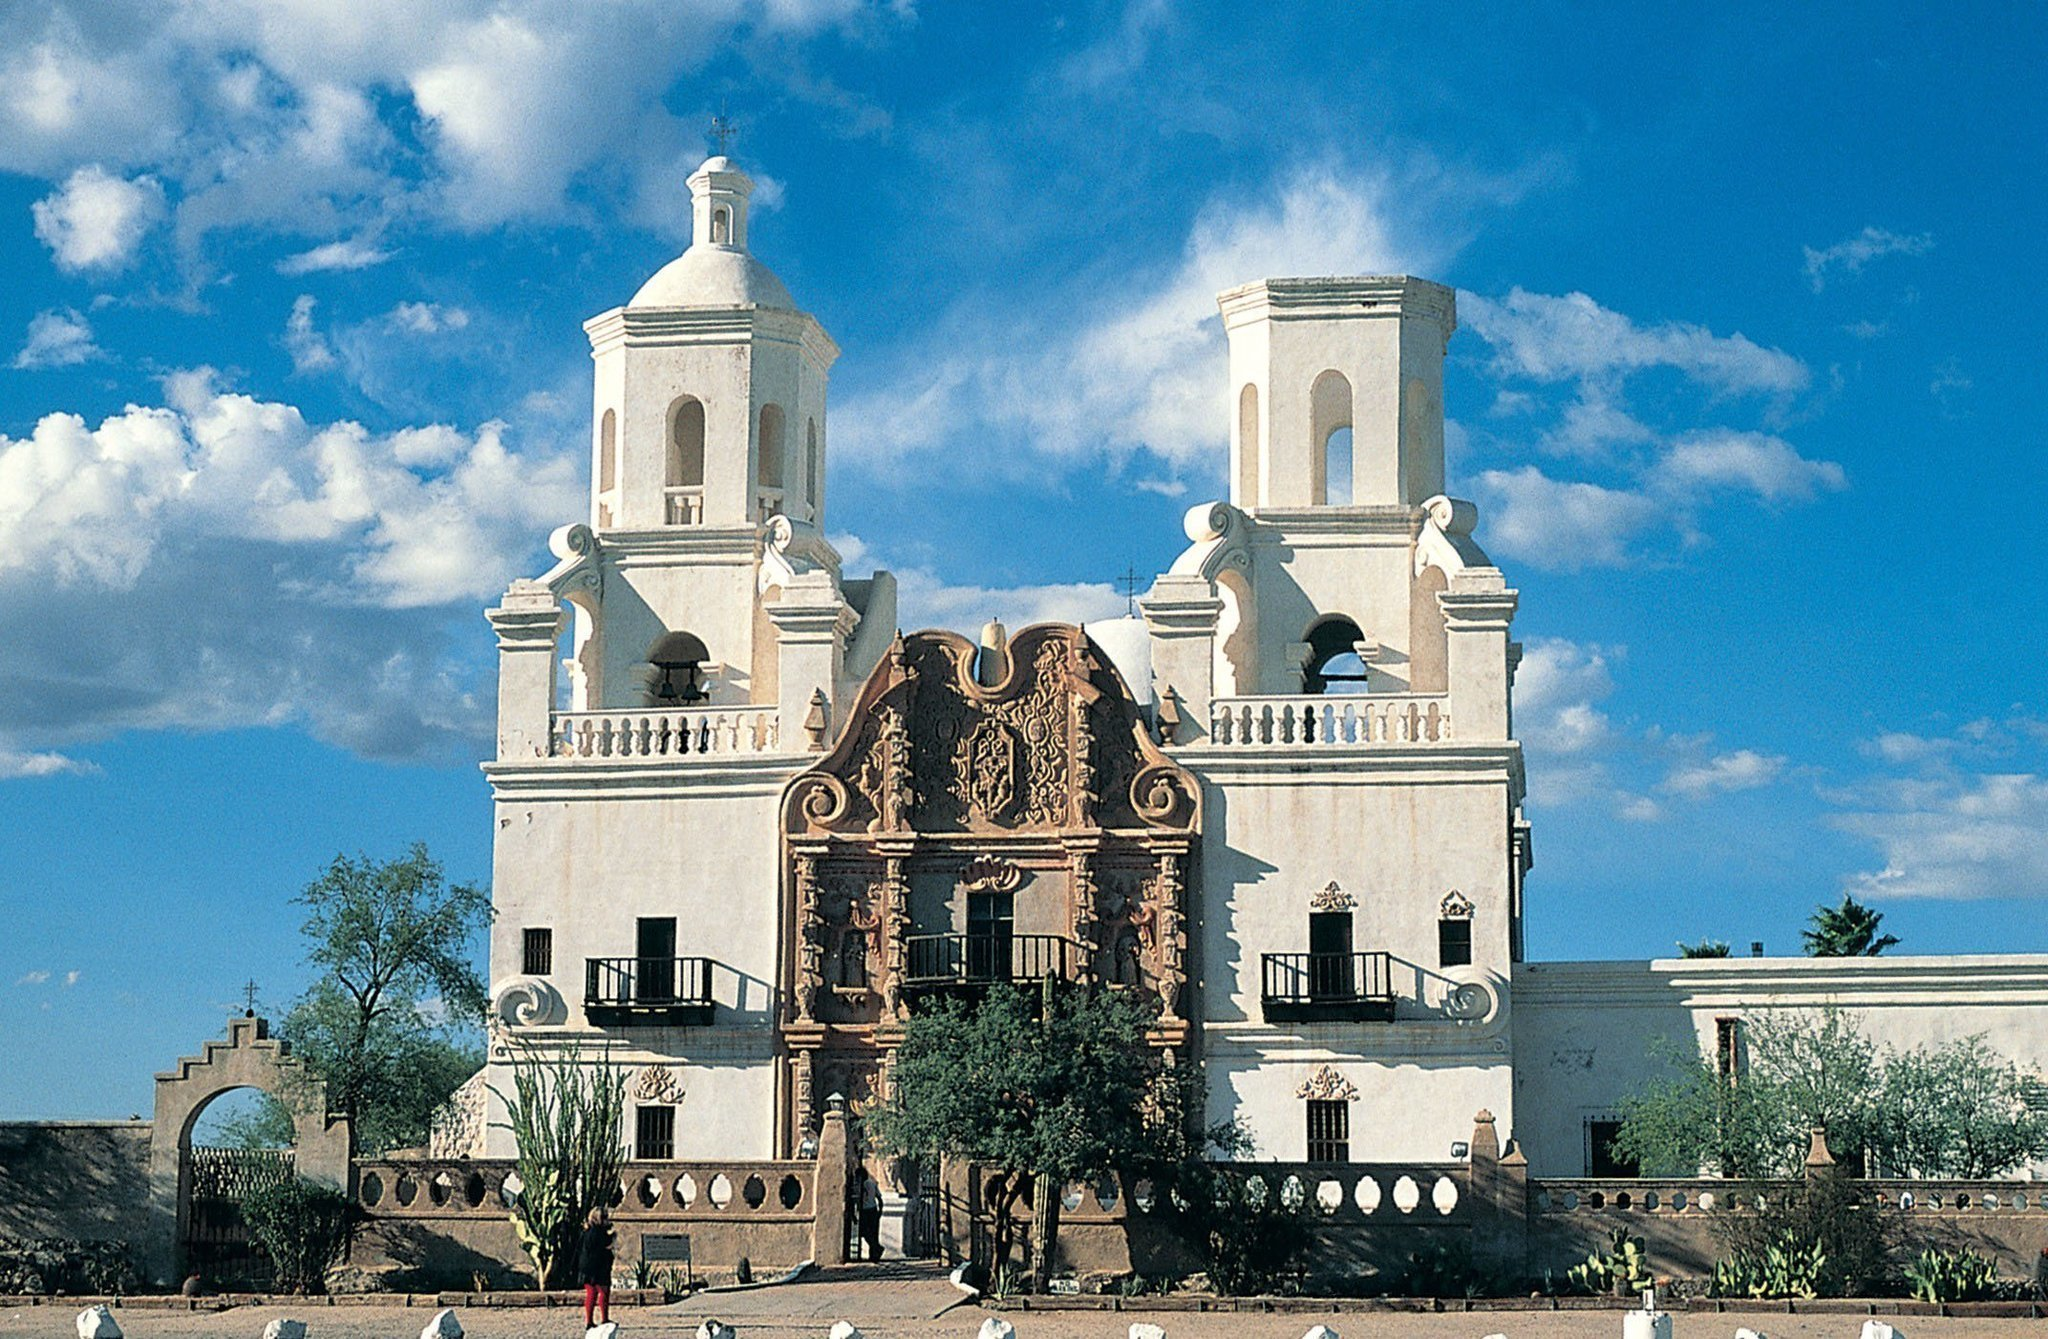 Tucson, Ariz.: 5 free things to see and do - The San Diego Union-Tribune